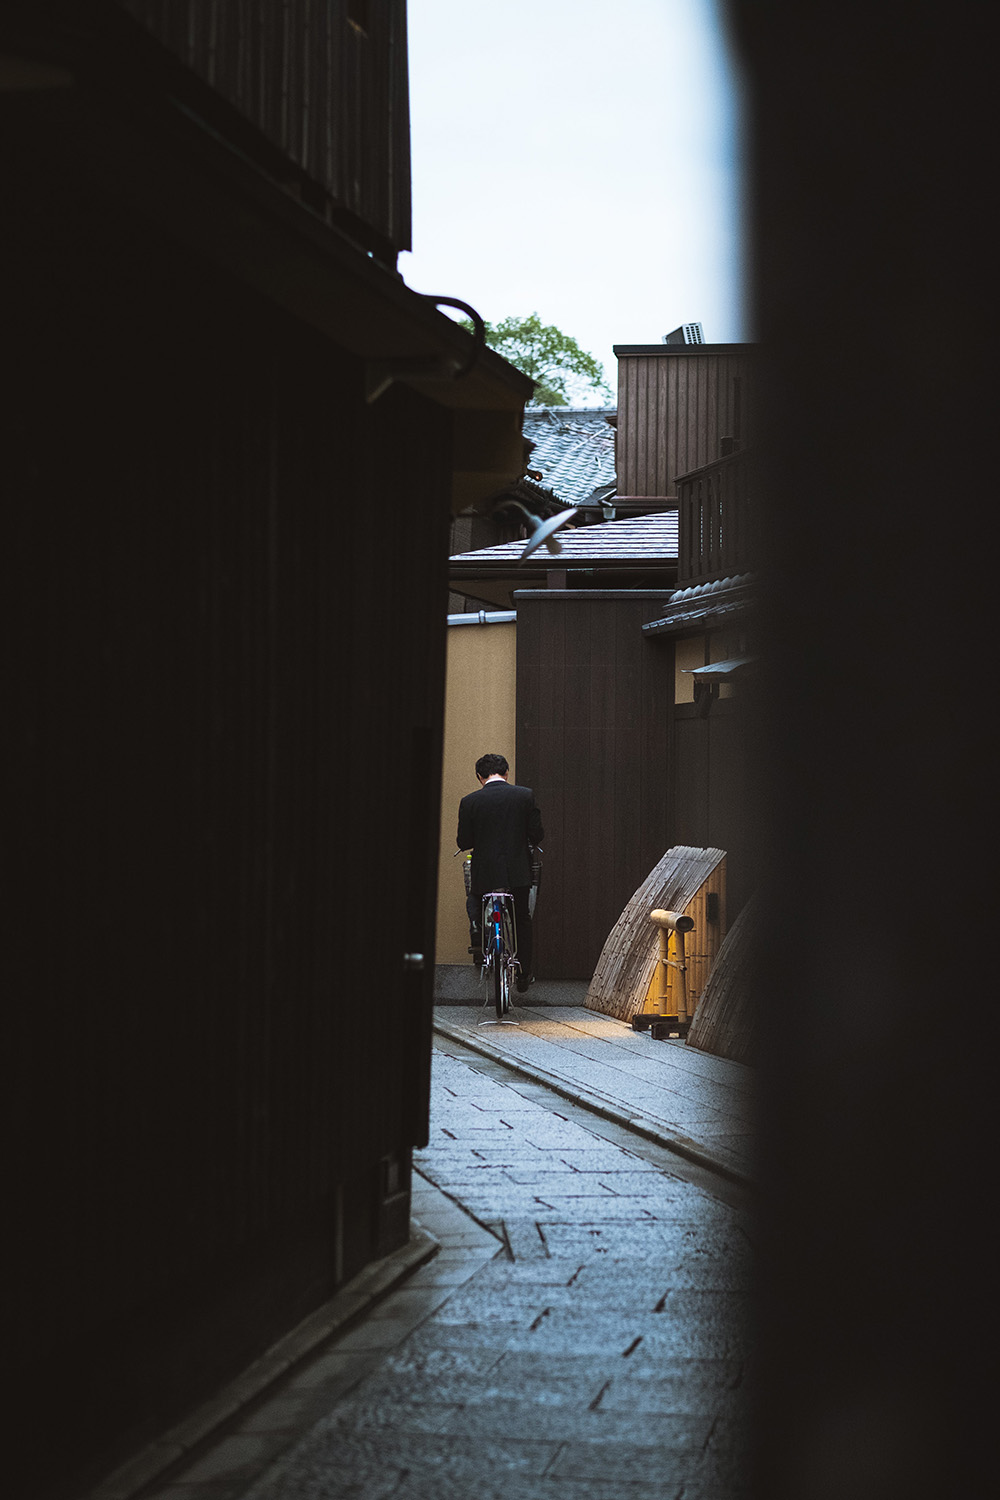 man waiting in alley